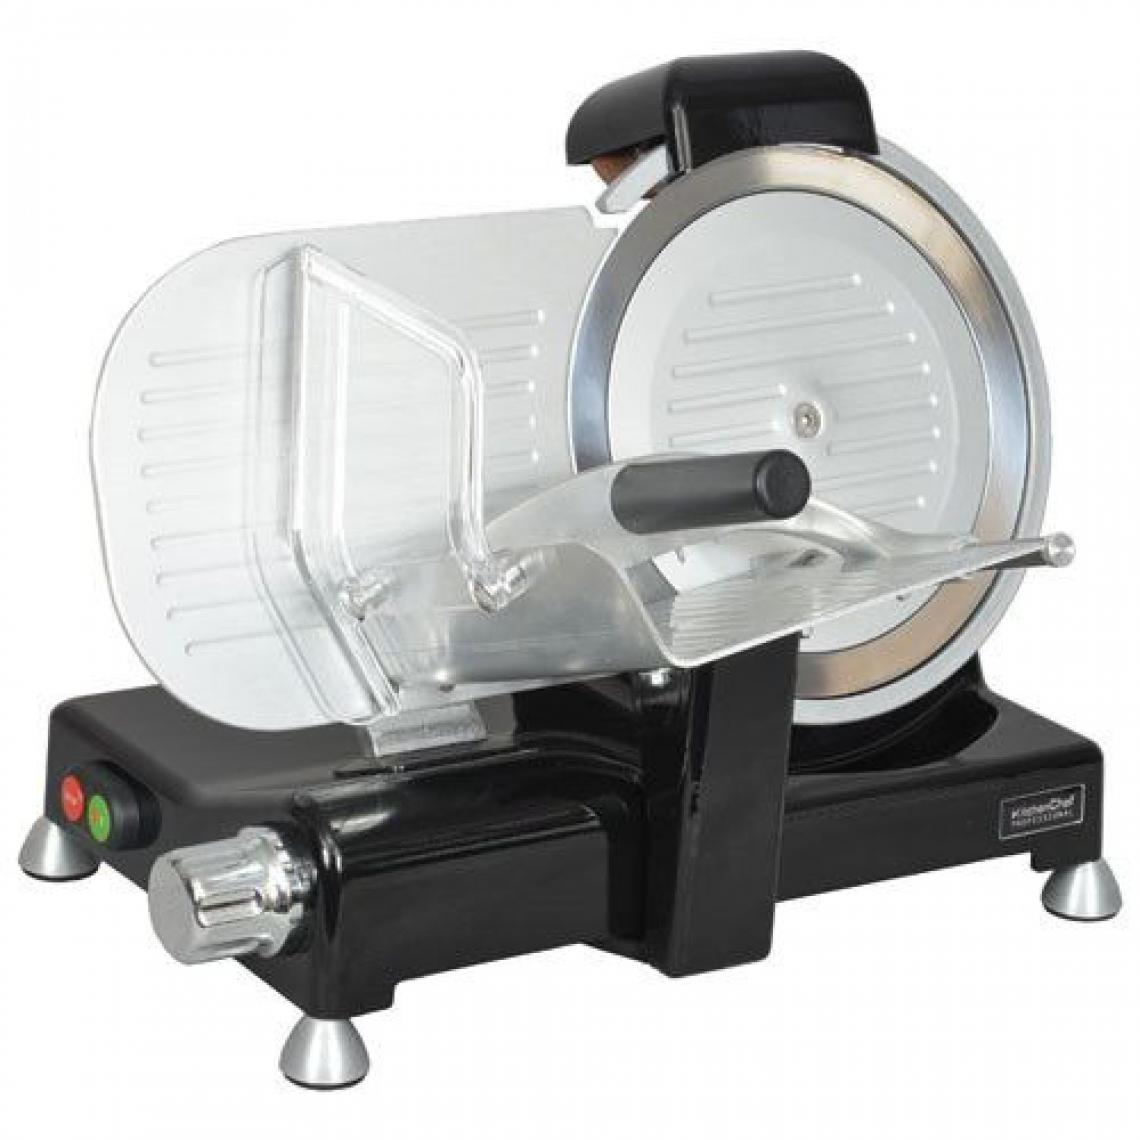 Kitchen Chef TRANCHEUSE PRO 140W 12,1KG CORPS FONTE ALU LAME 25,5CM INOX PROTECTION KITCHENCHEF - KCPTR250N